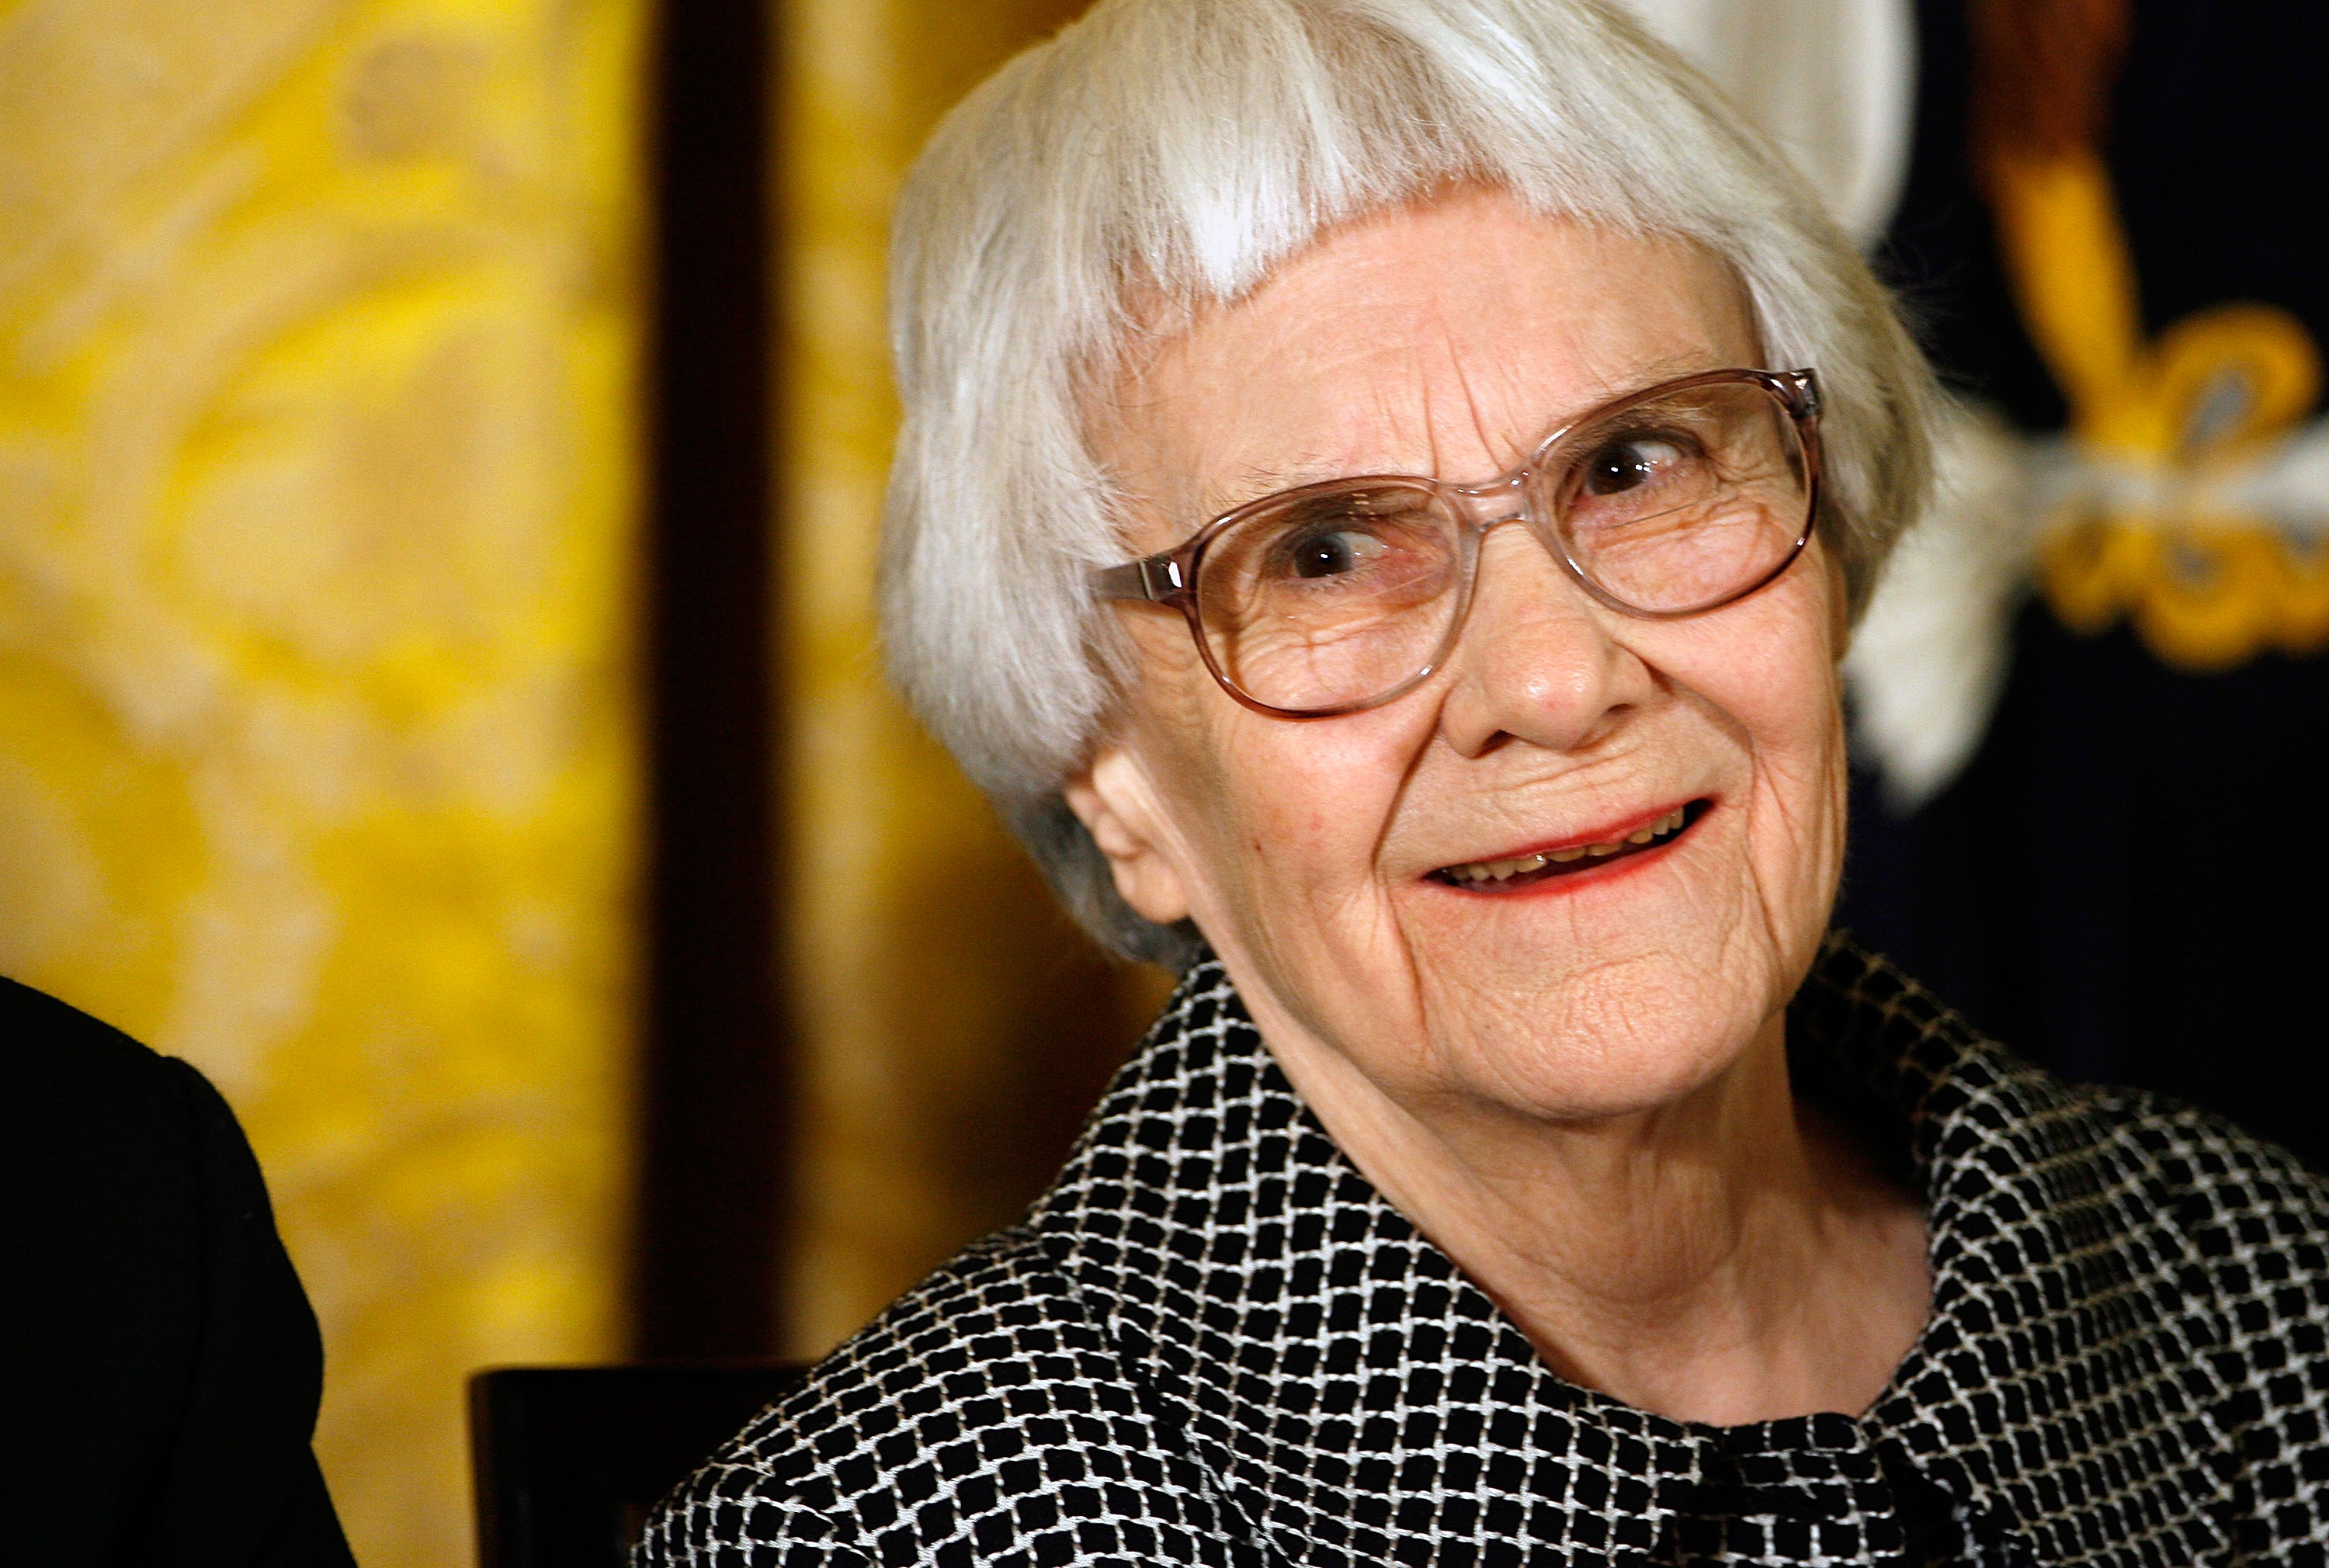 Pulitzer Prize winner and 'To Kill A Mockingbird' author Harper Lee smiles before receiving the 2007 Presidential Medal of Freedom in the East Room of the White House November 5, 2007 in Washington, DC.